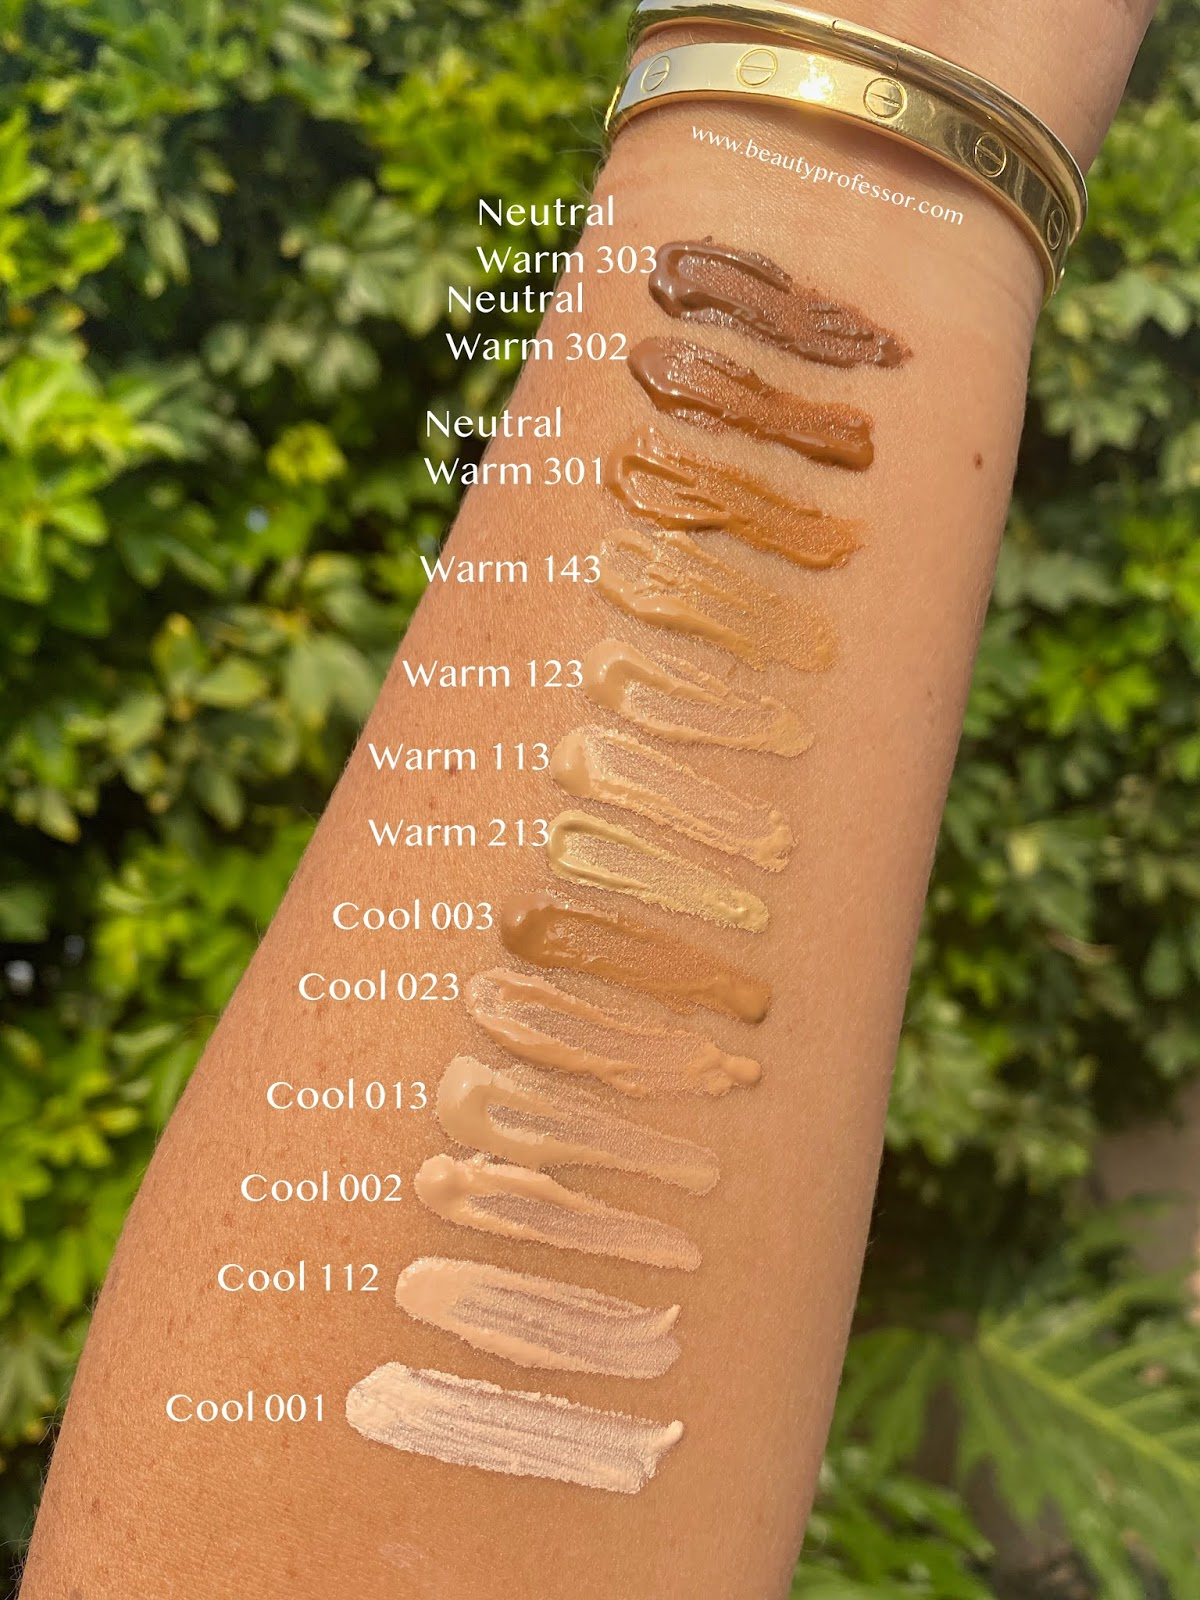 new Koh Gen do moisture foundation swatches